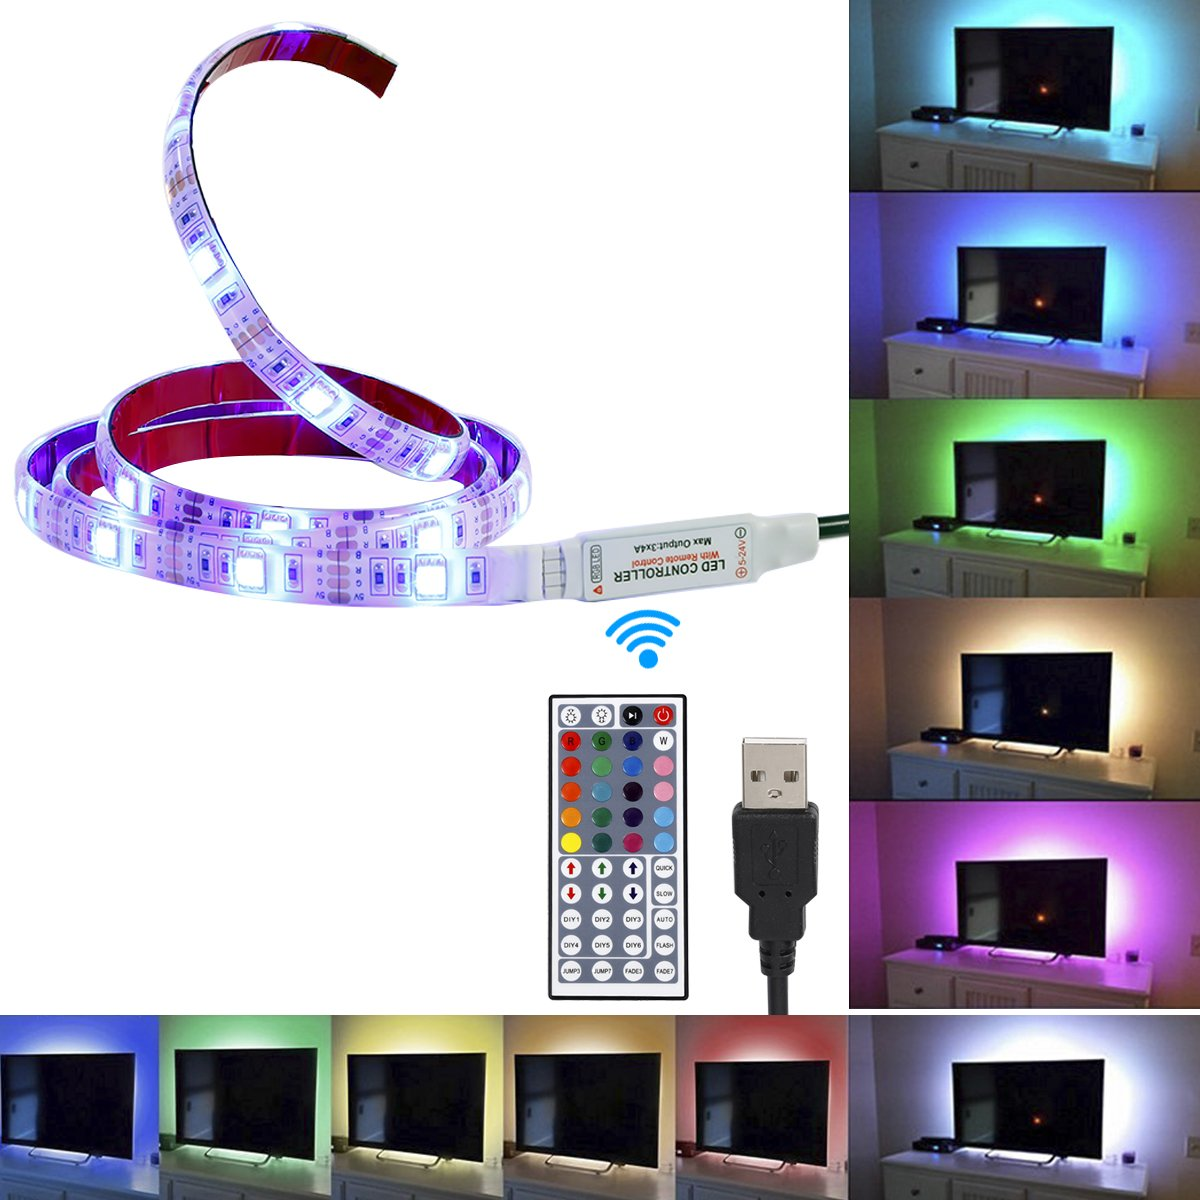 Topled Light USB LED Strip 3.28ft/1M Multicolor RGB LED Lighting System Kit Cuttable with 44Key Remote Controll for Flat Screen TV LCD, Desktop PC